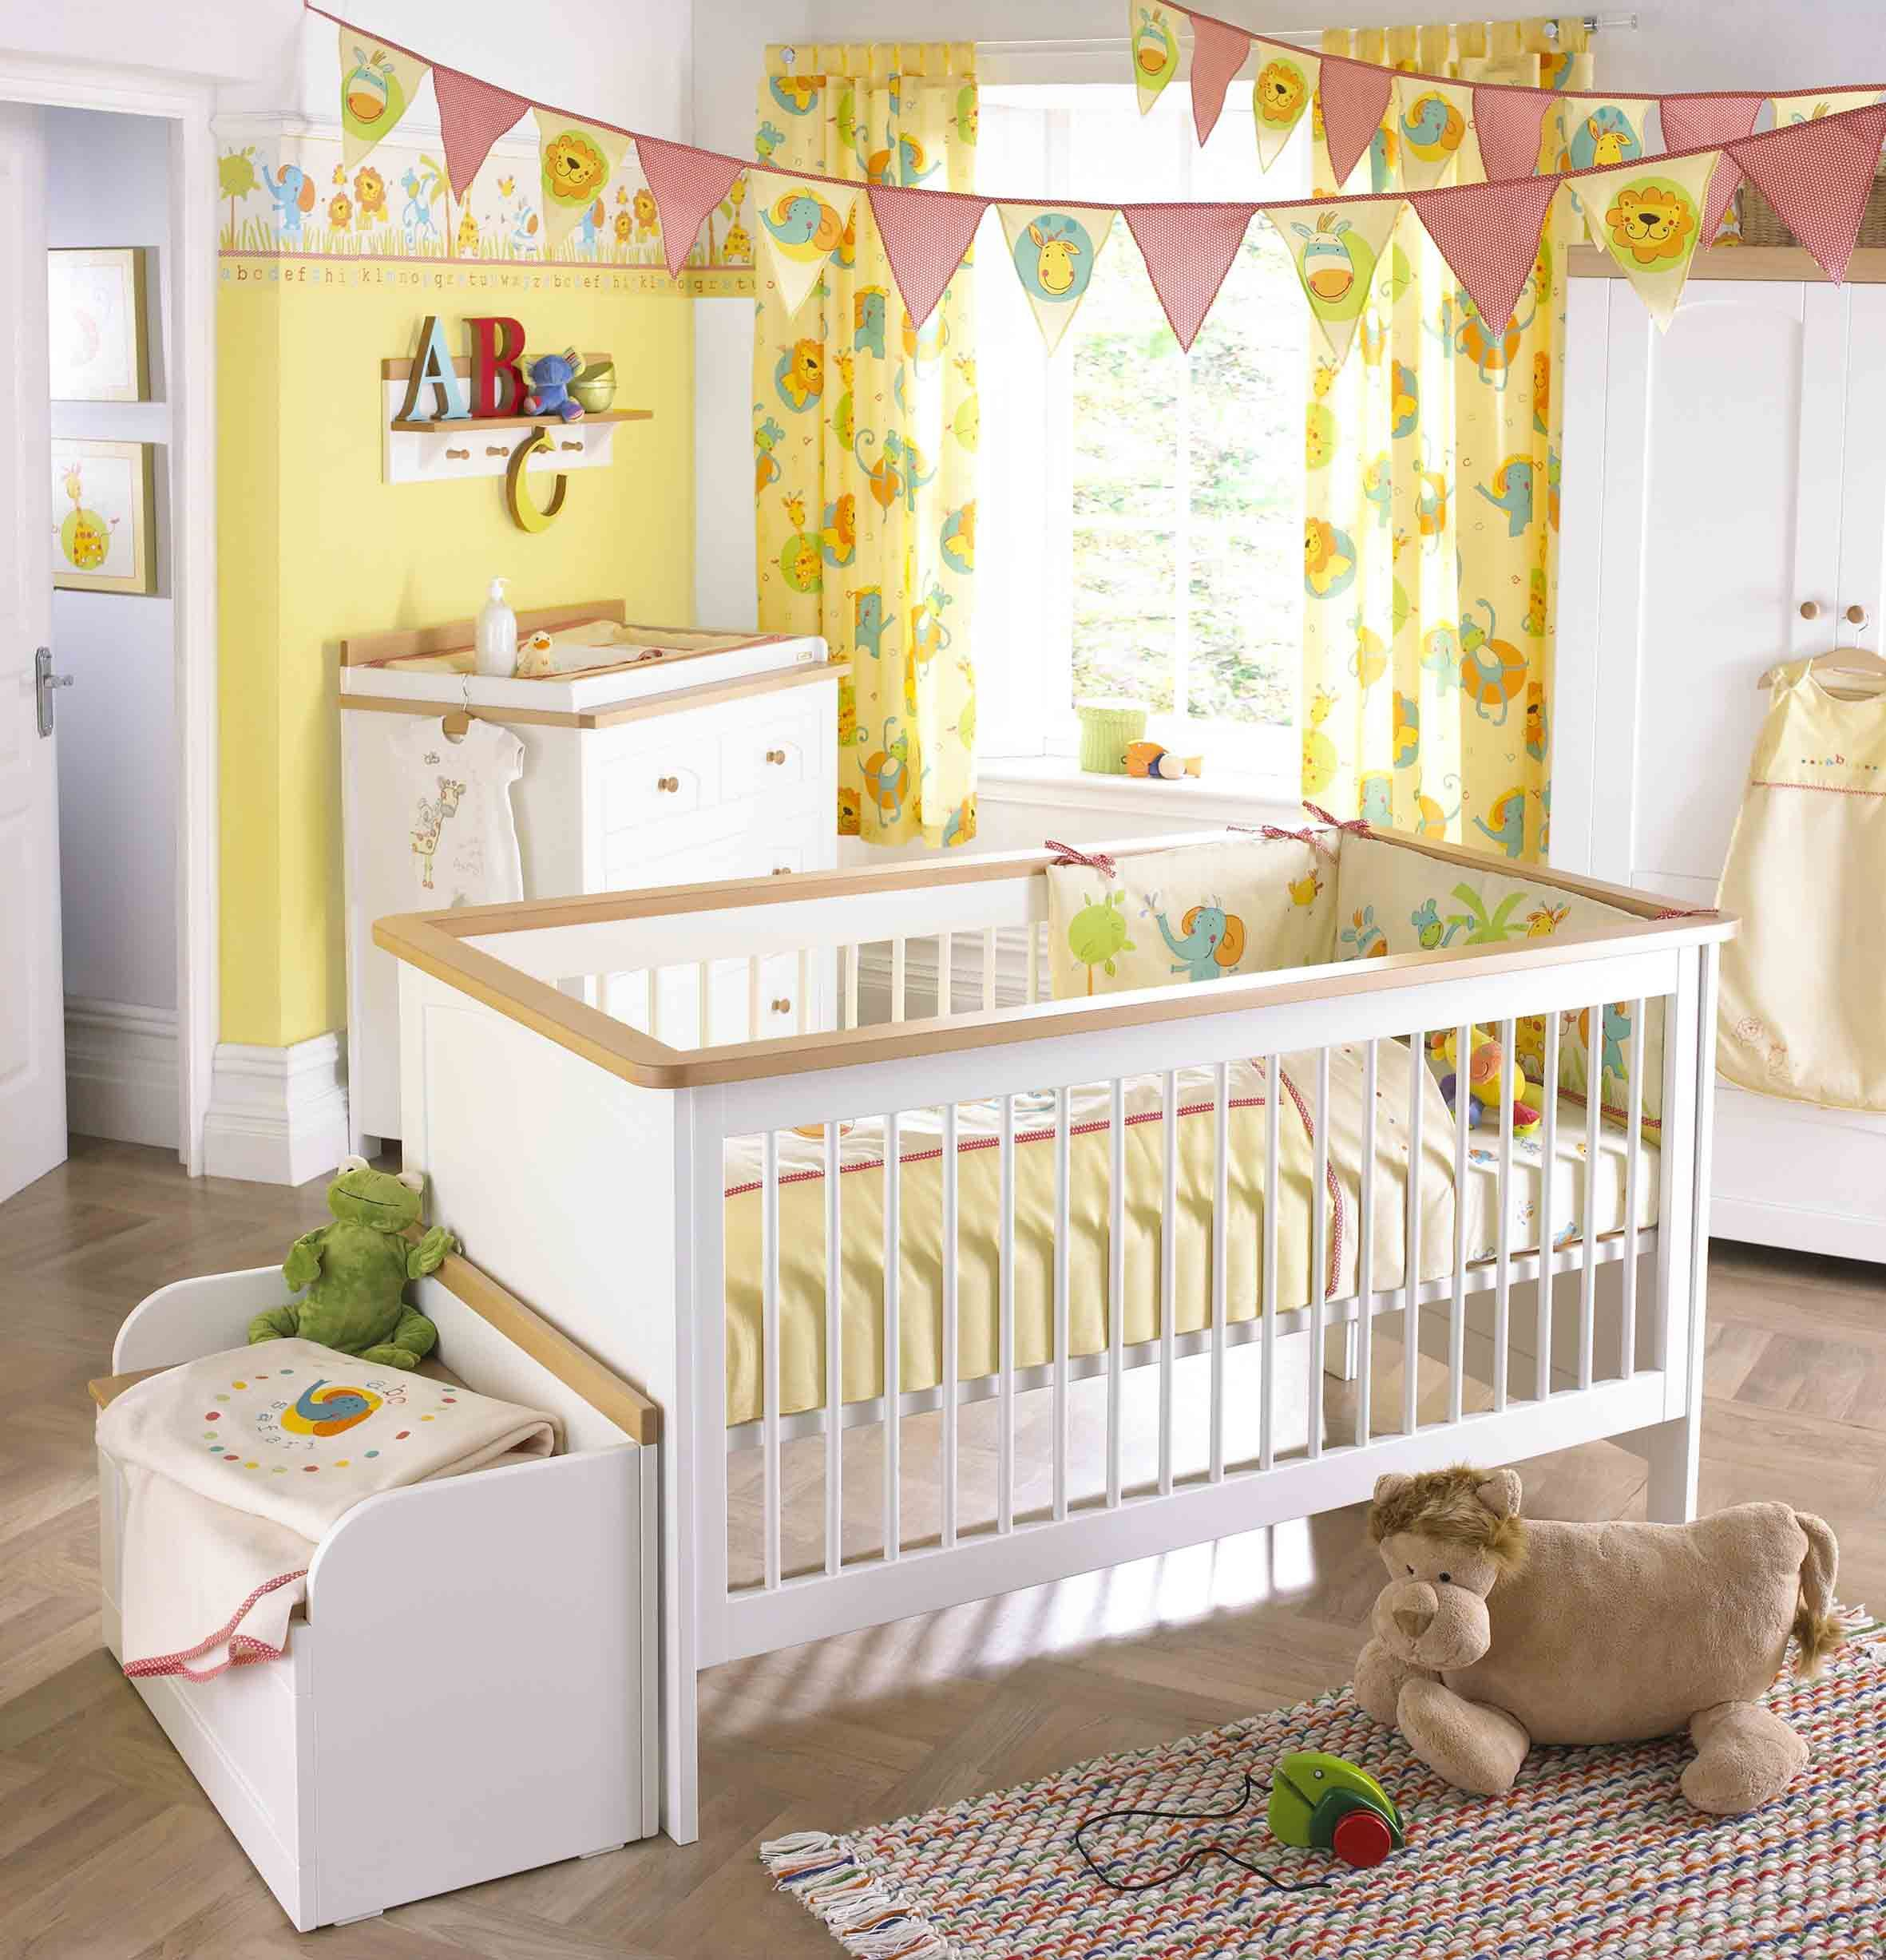 baby rooms | Theme For Baby Room | HomeDesignImprovement | ···Dream ...